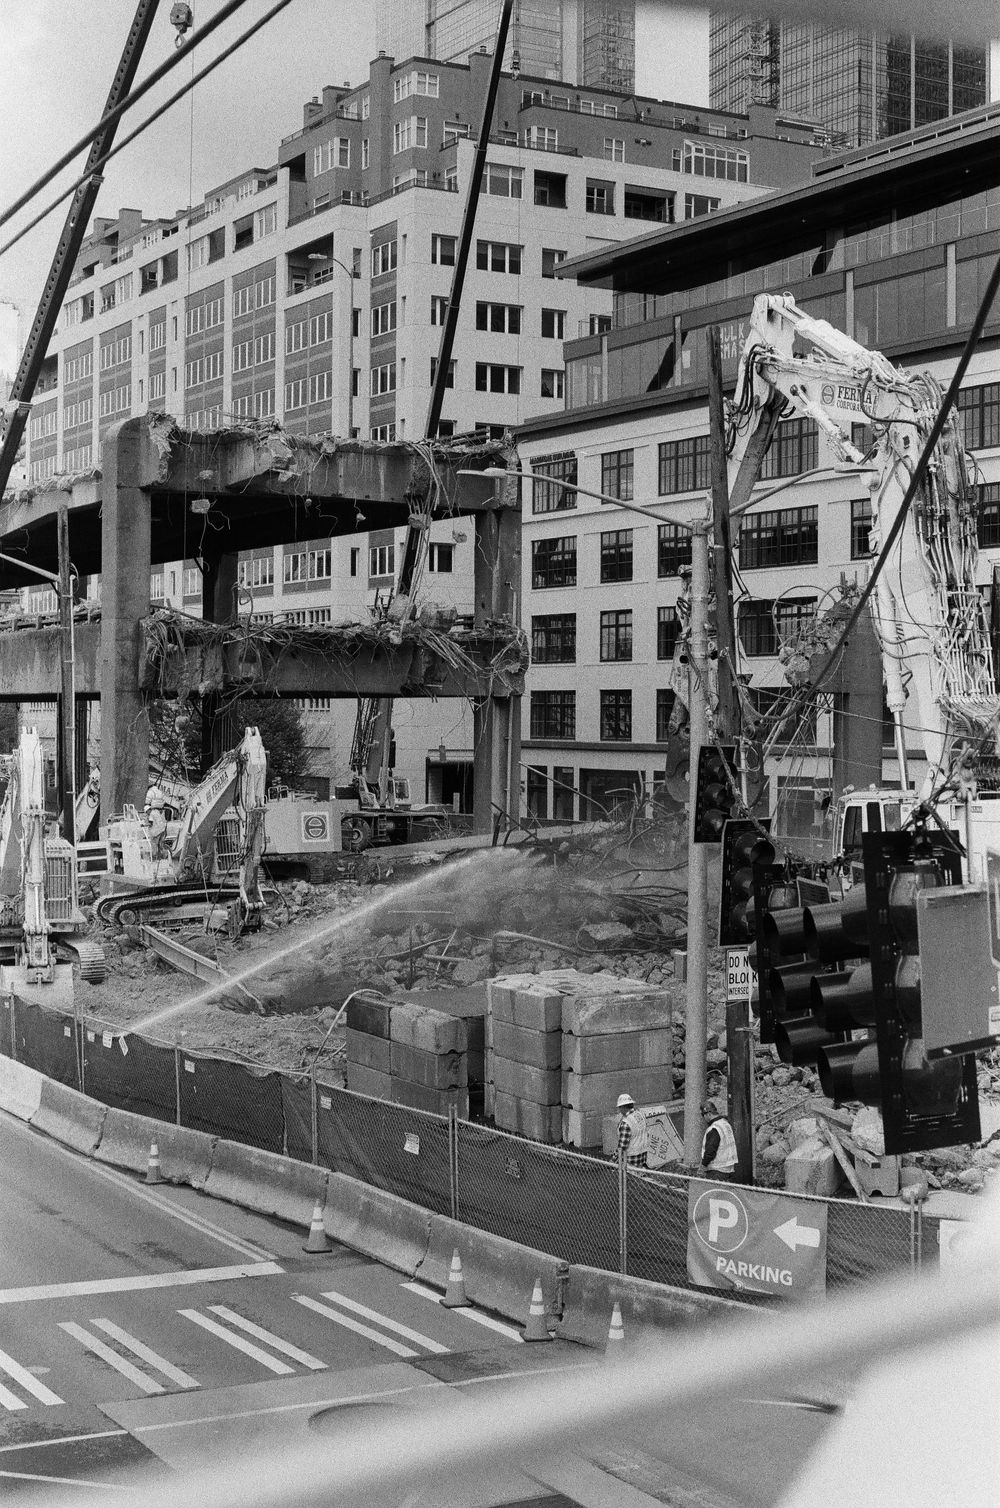 Seattle Viaduct Demolition (50mm ilford 400) - image 1 - student project